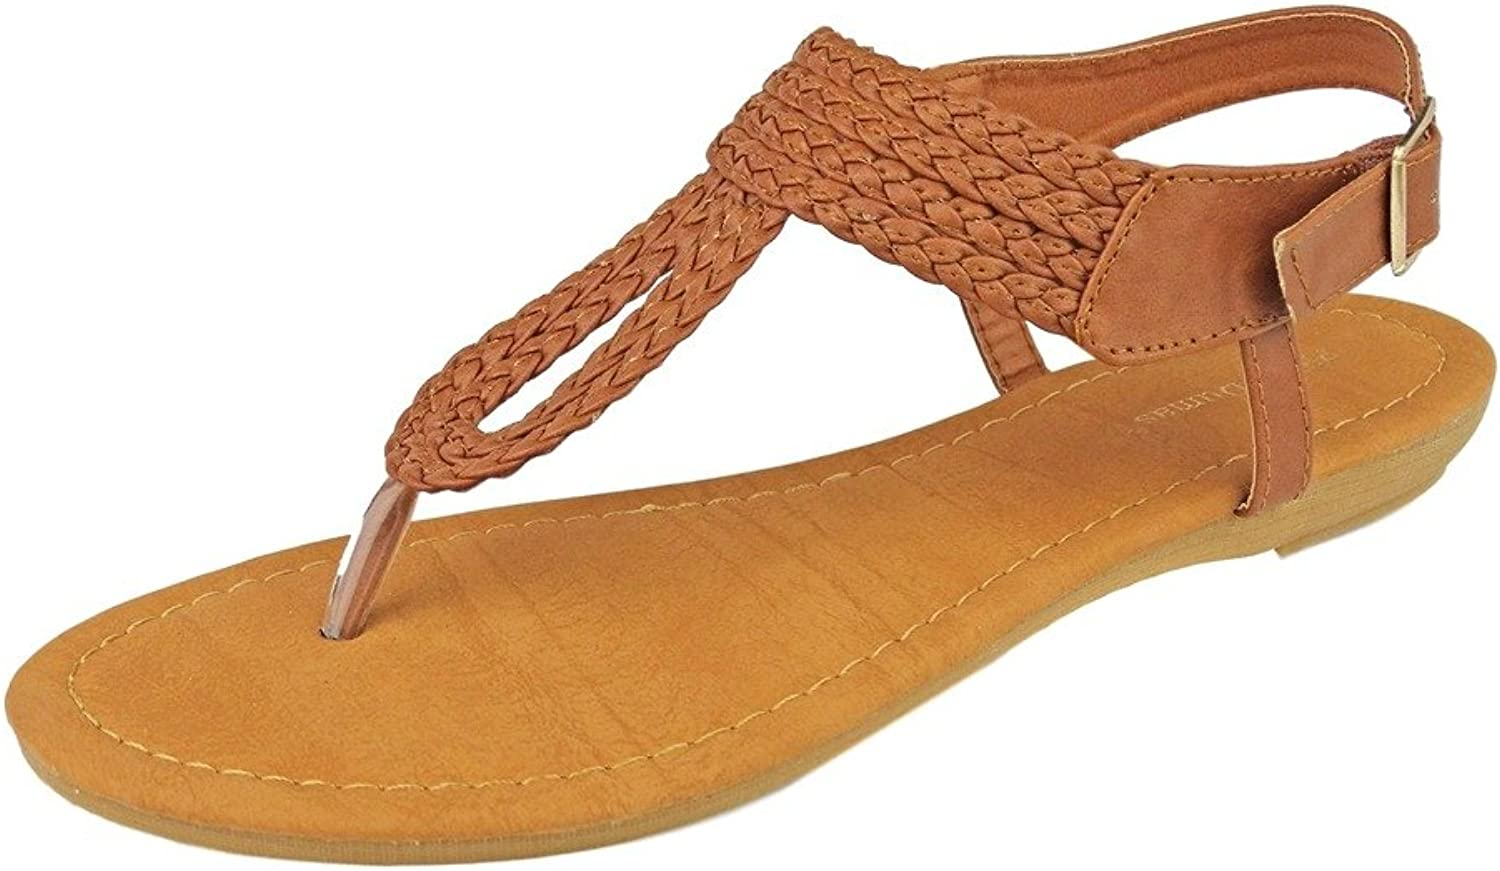 Pierre Dumas Women's Lydia-4 Vegan Leather Braided Adjustable Ankle Strap Thong Flats Sandals